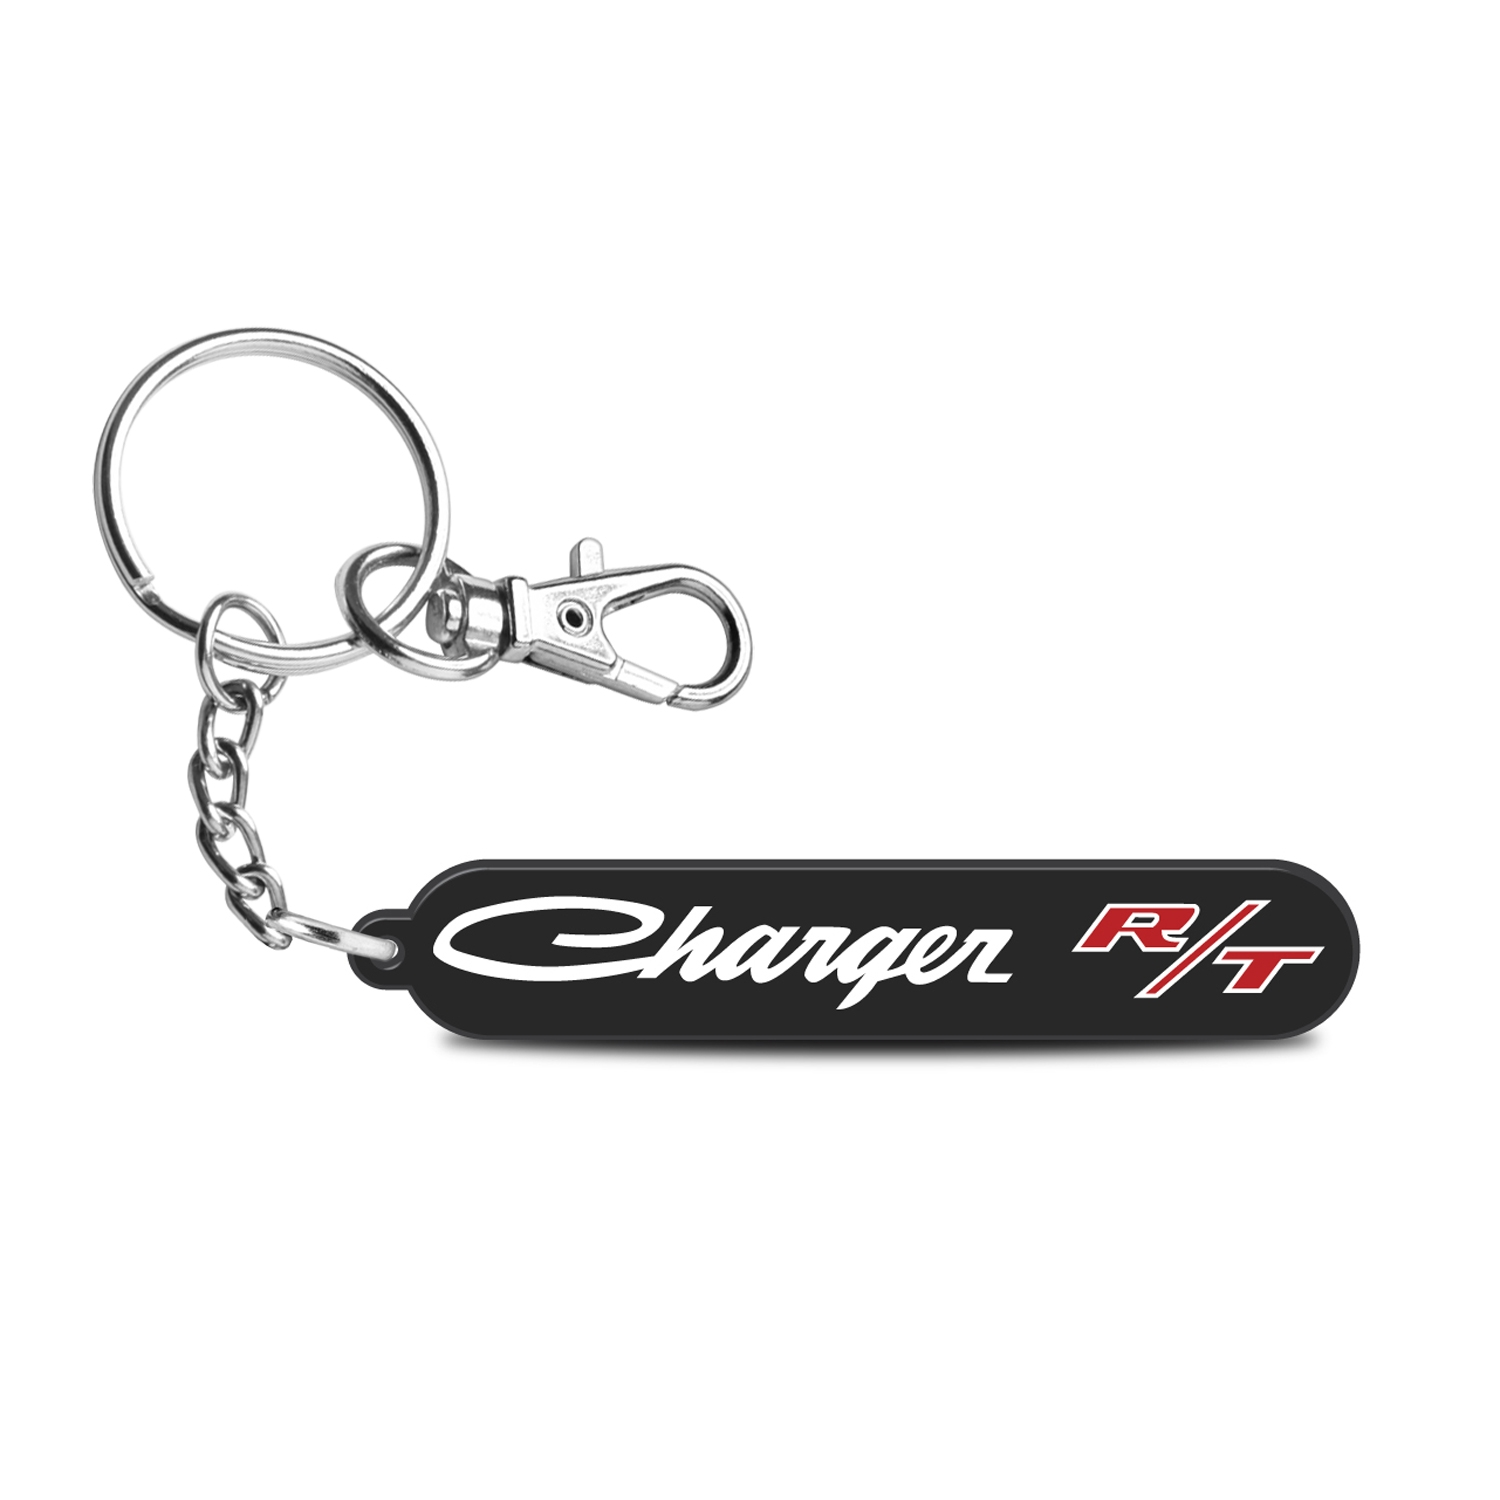 Dodge Charger R/T Classic Custom Laser Cut with UV Full-Color Printing Acrylic Charm Key Chain